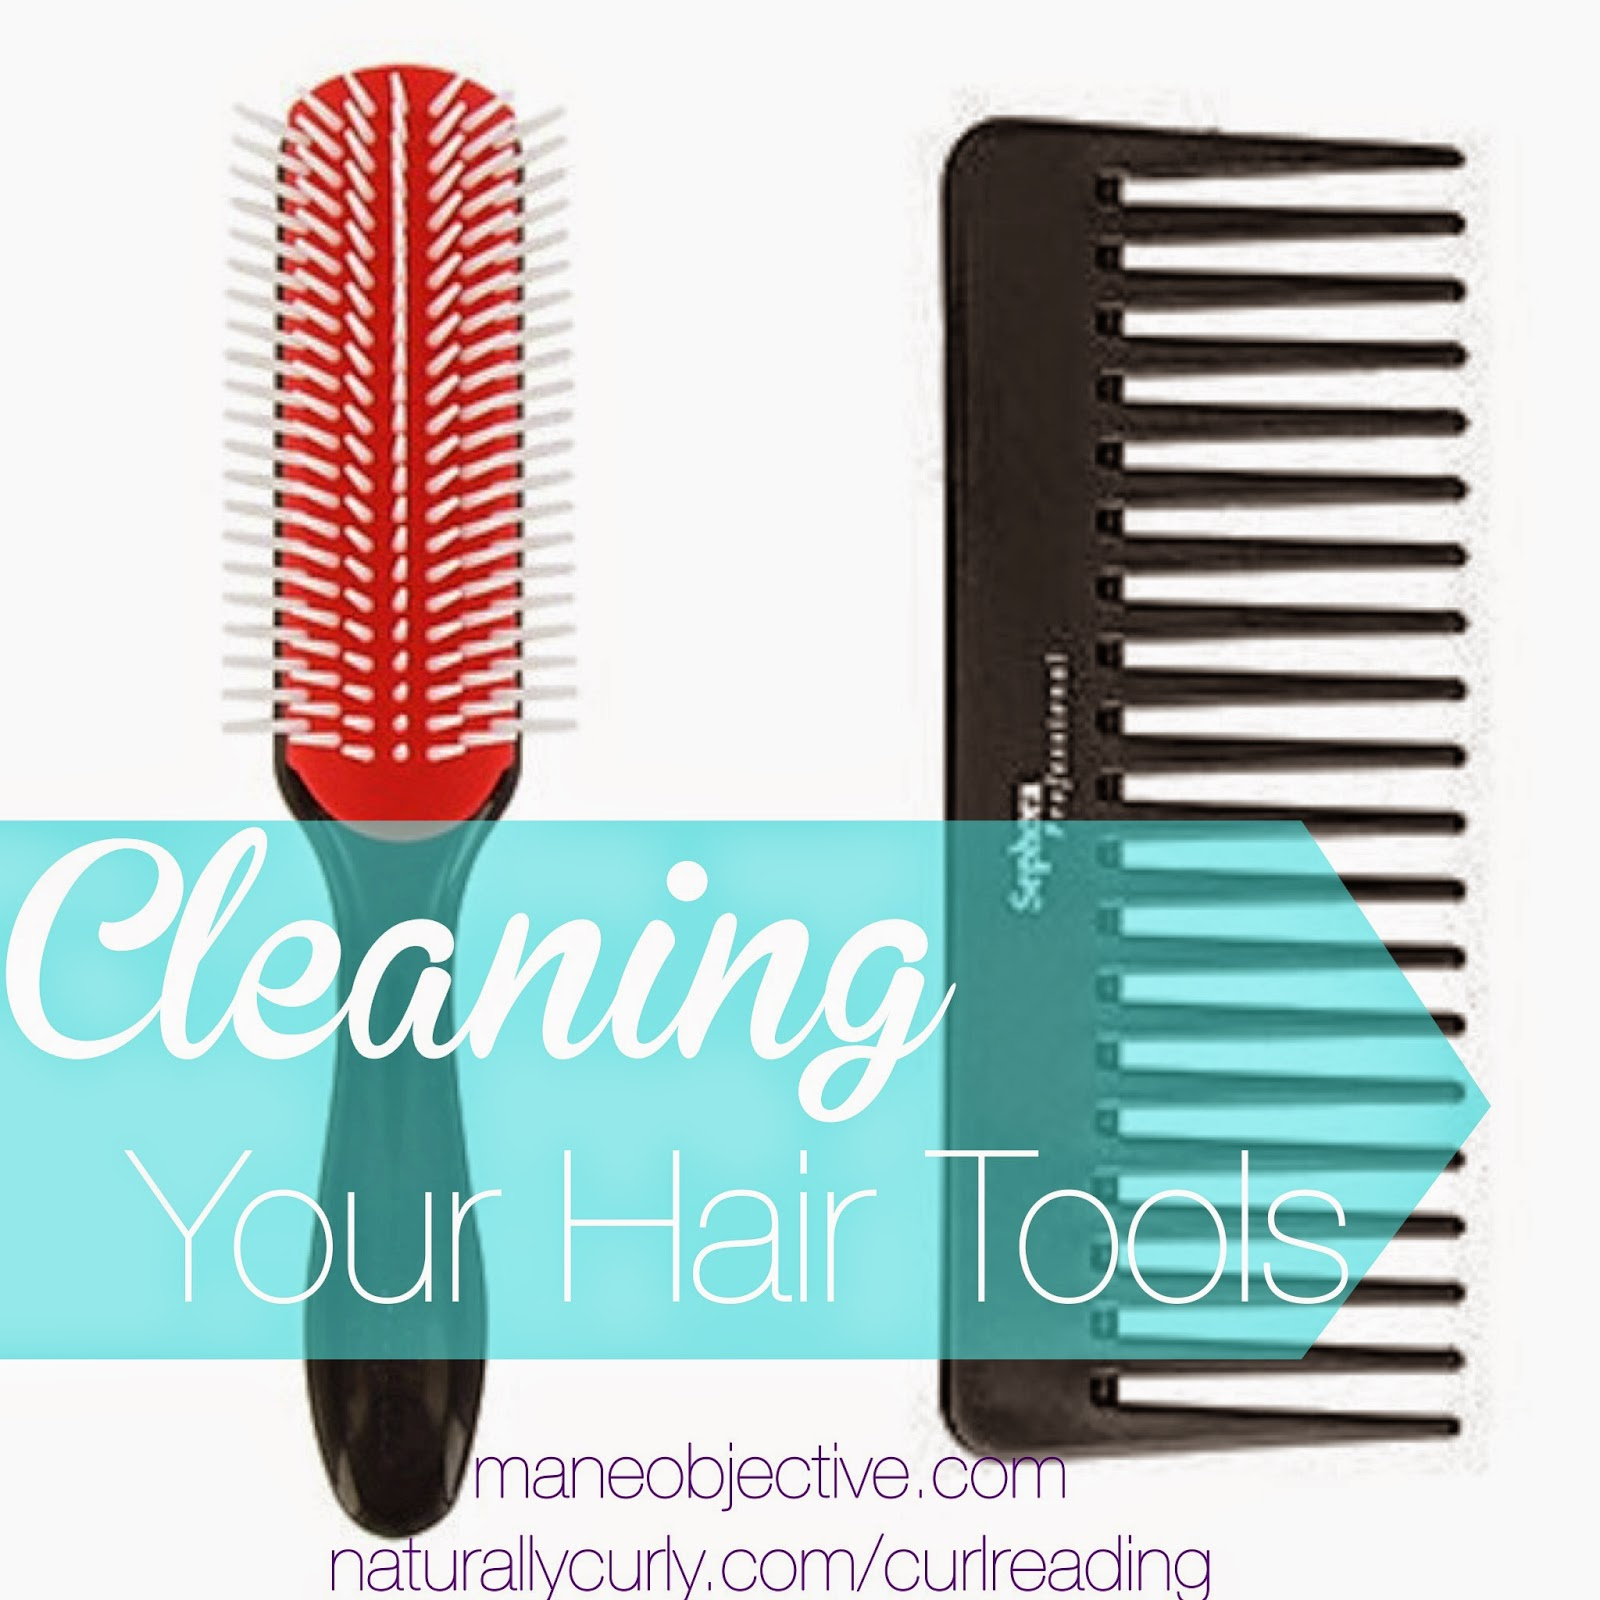 Quick and Dirty Tips: Cleaning Your Hair Tools